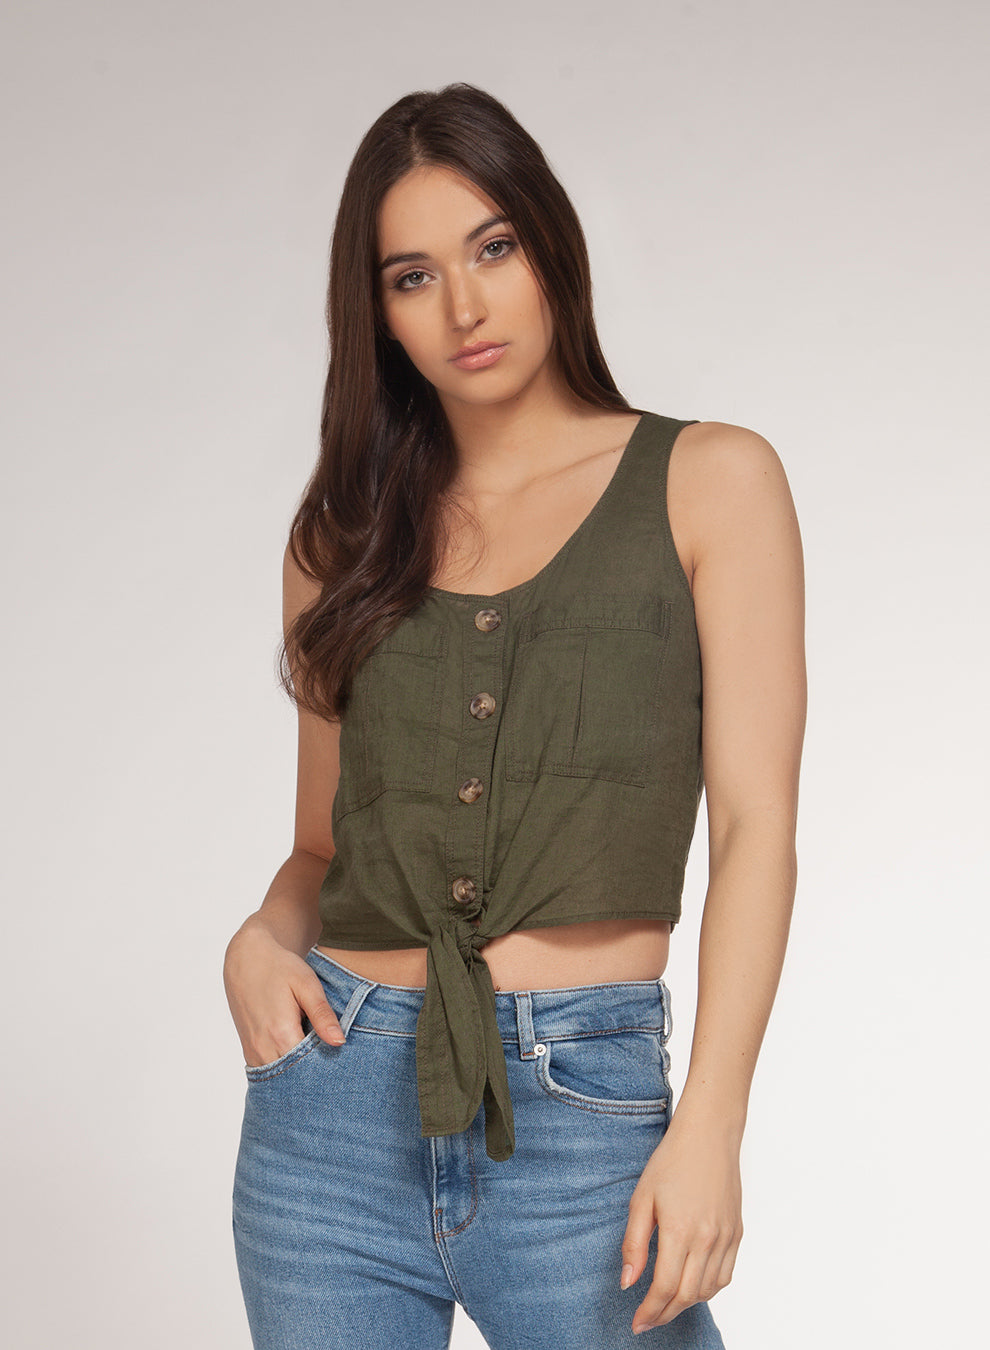 DEX CLOTHING LADIES GREEN SS TOP